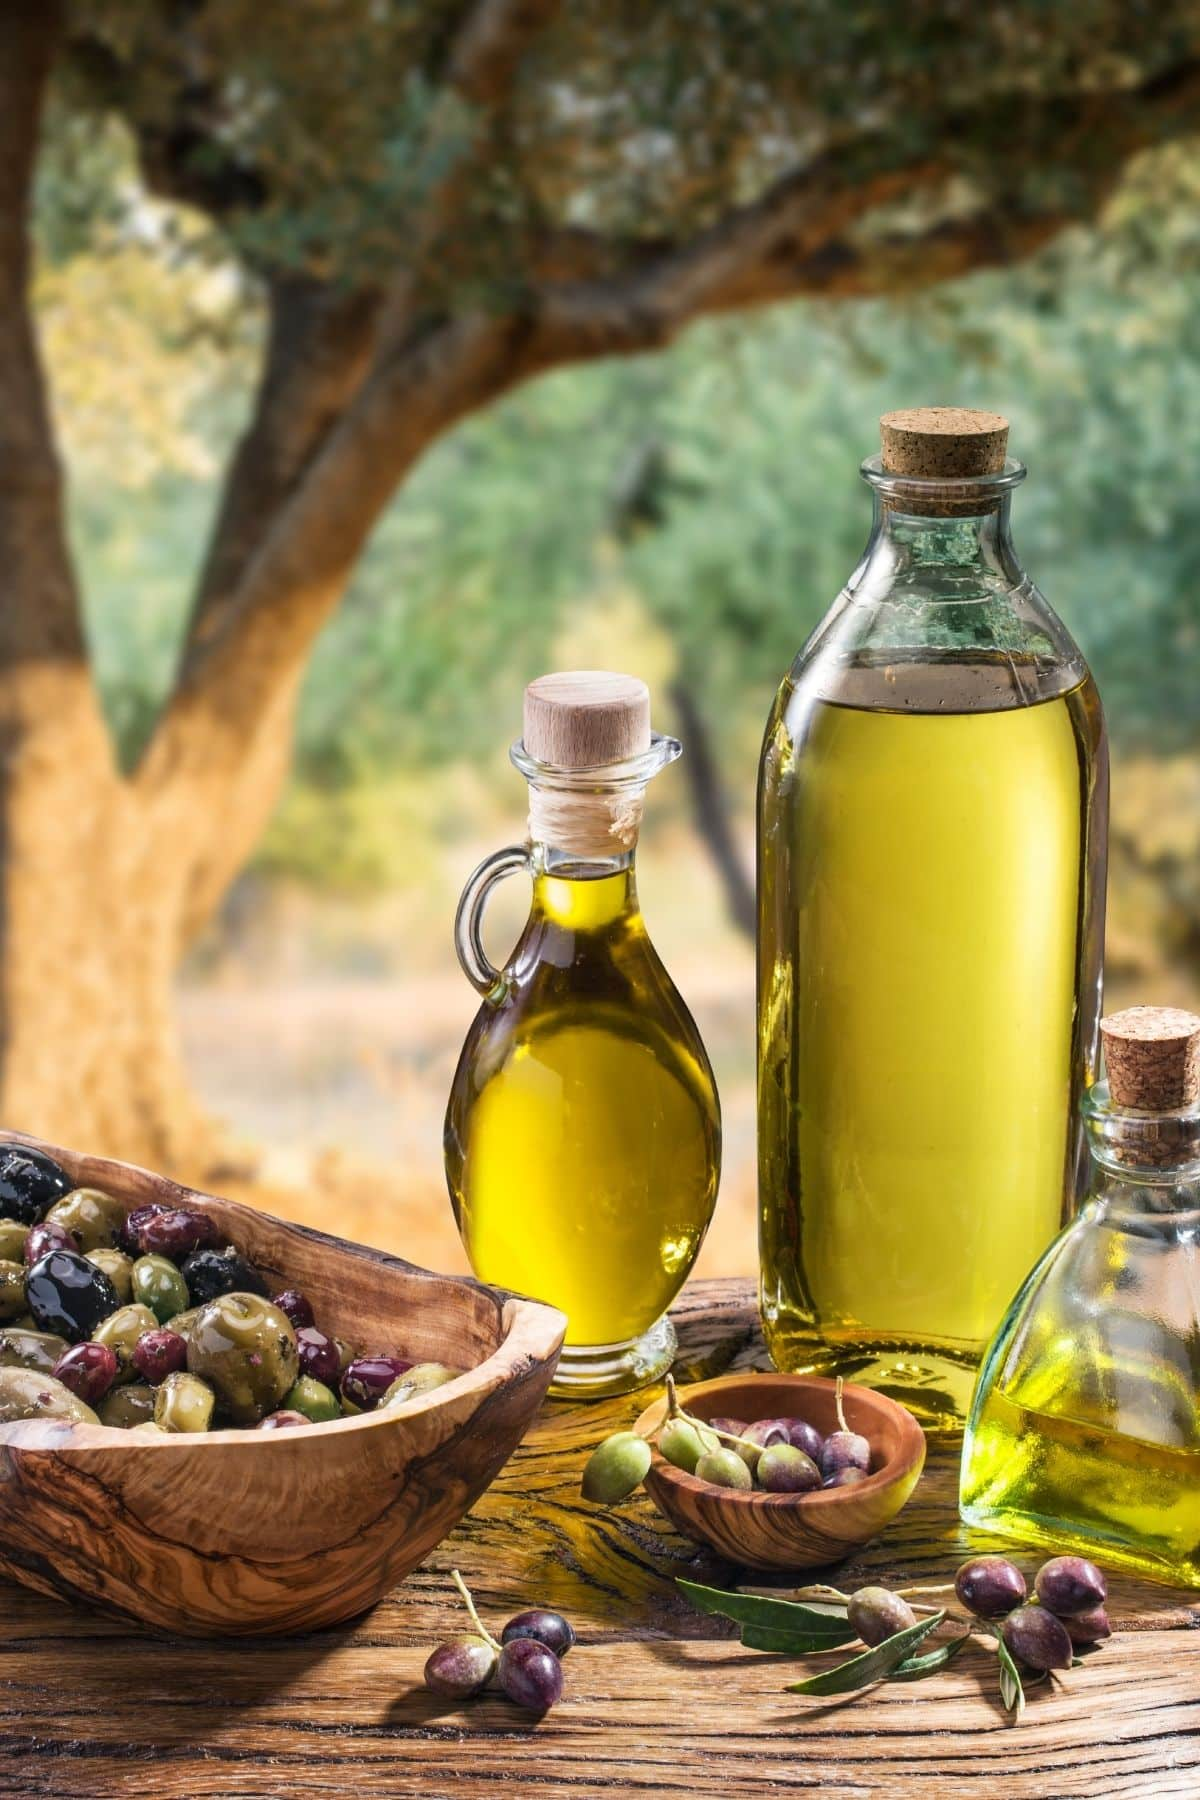 jars of olive oil on a picnic table with fresh olives